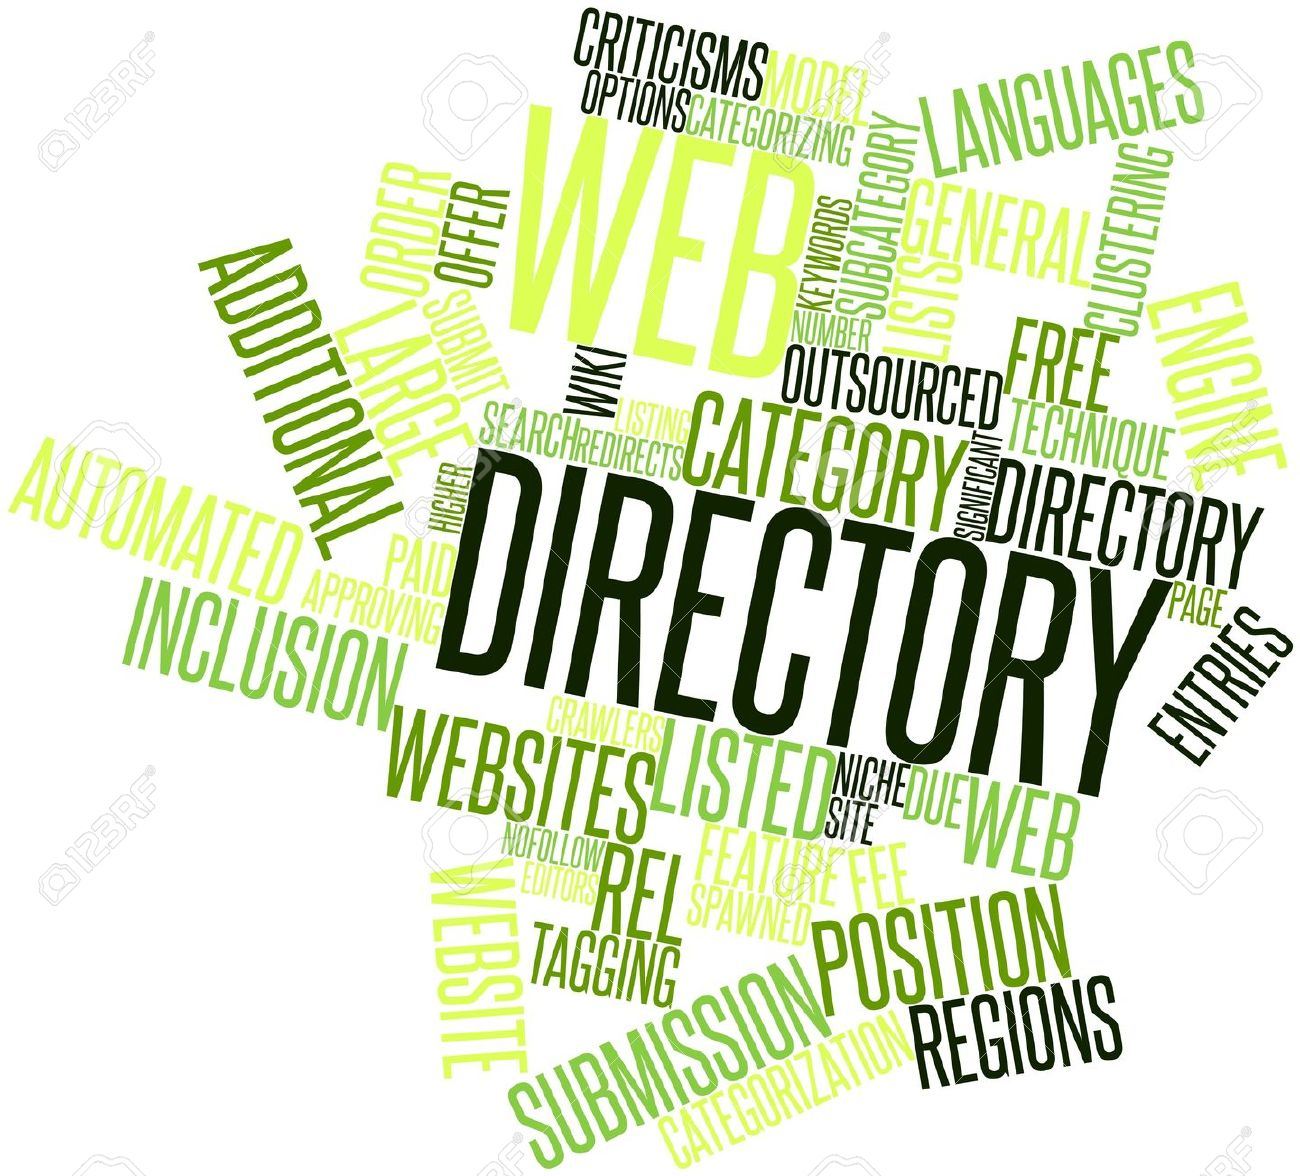 websitedirectory